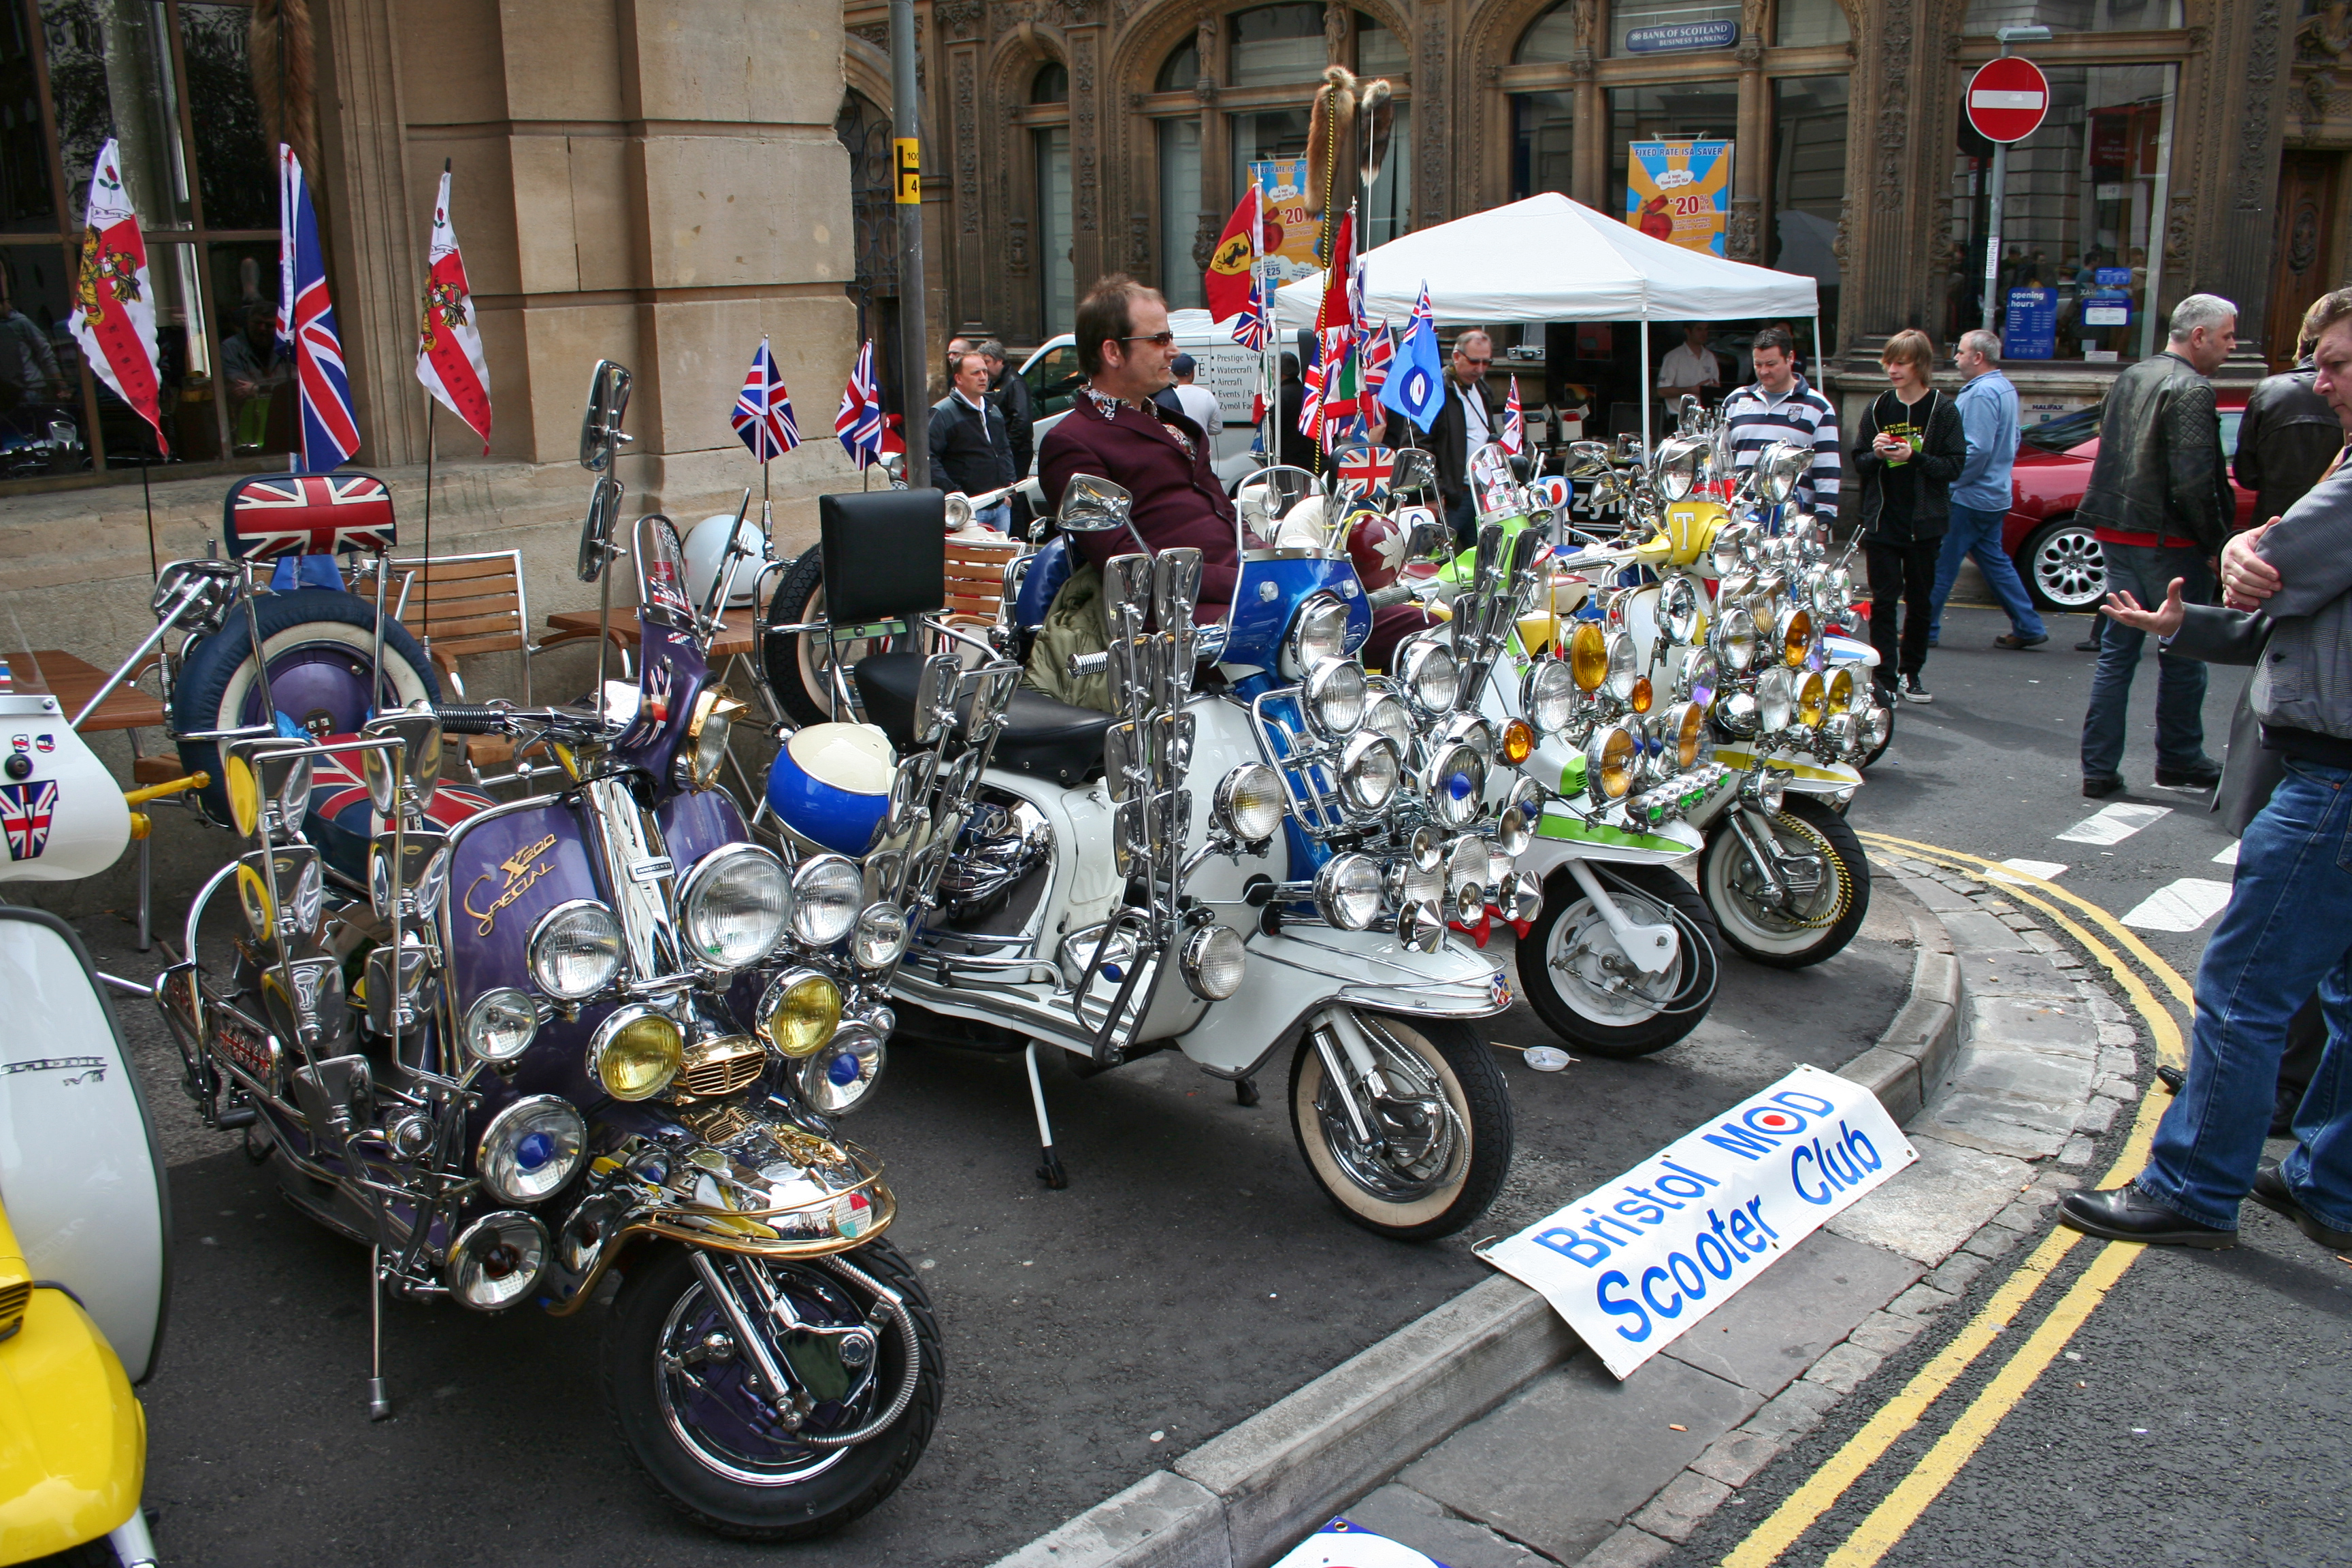 http://upload.wikimedia.org/wikipedia/commons/9/97/Bristol_Mod_Scooter_Club_1.jpg